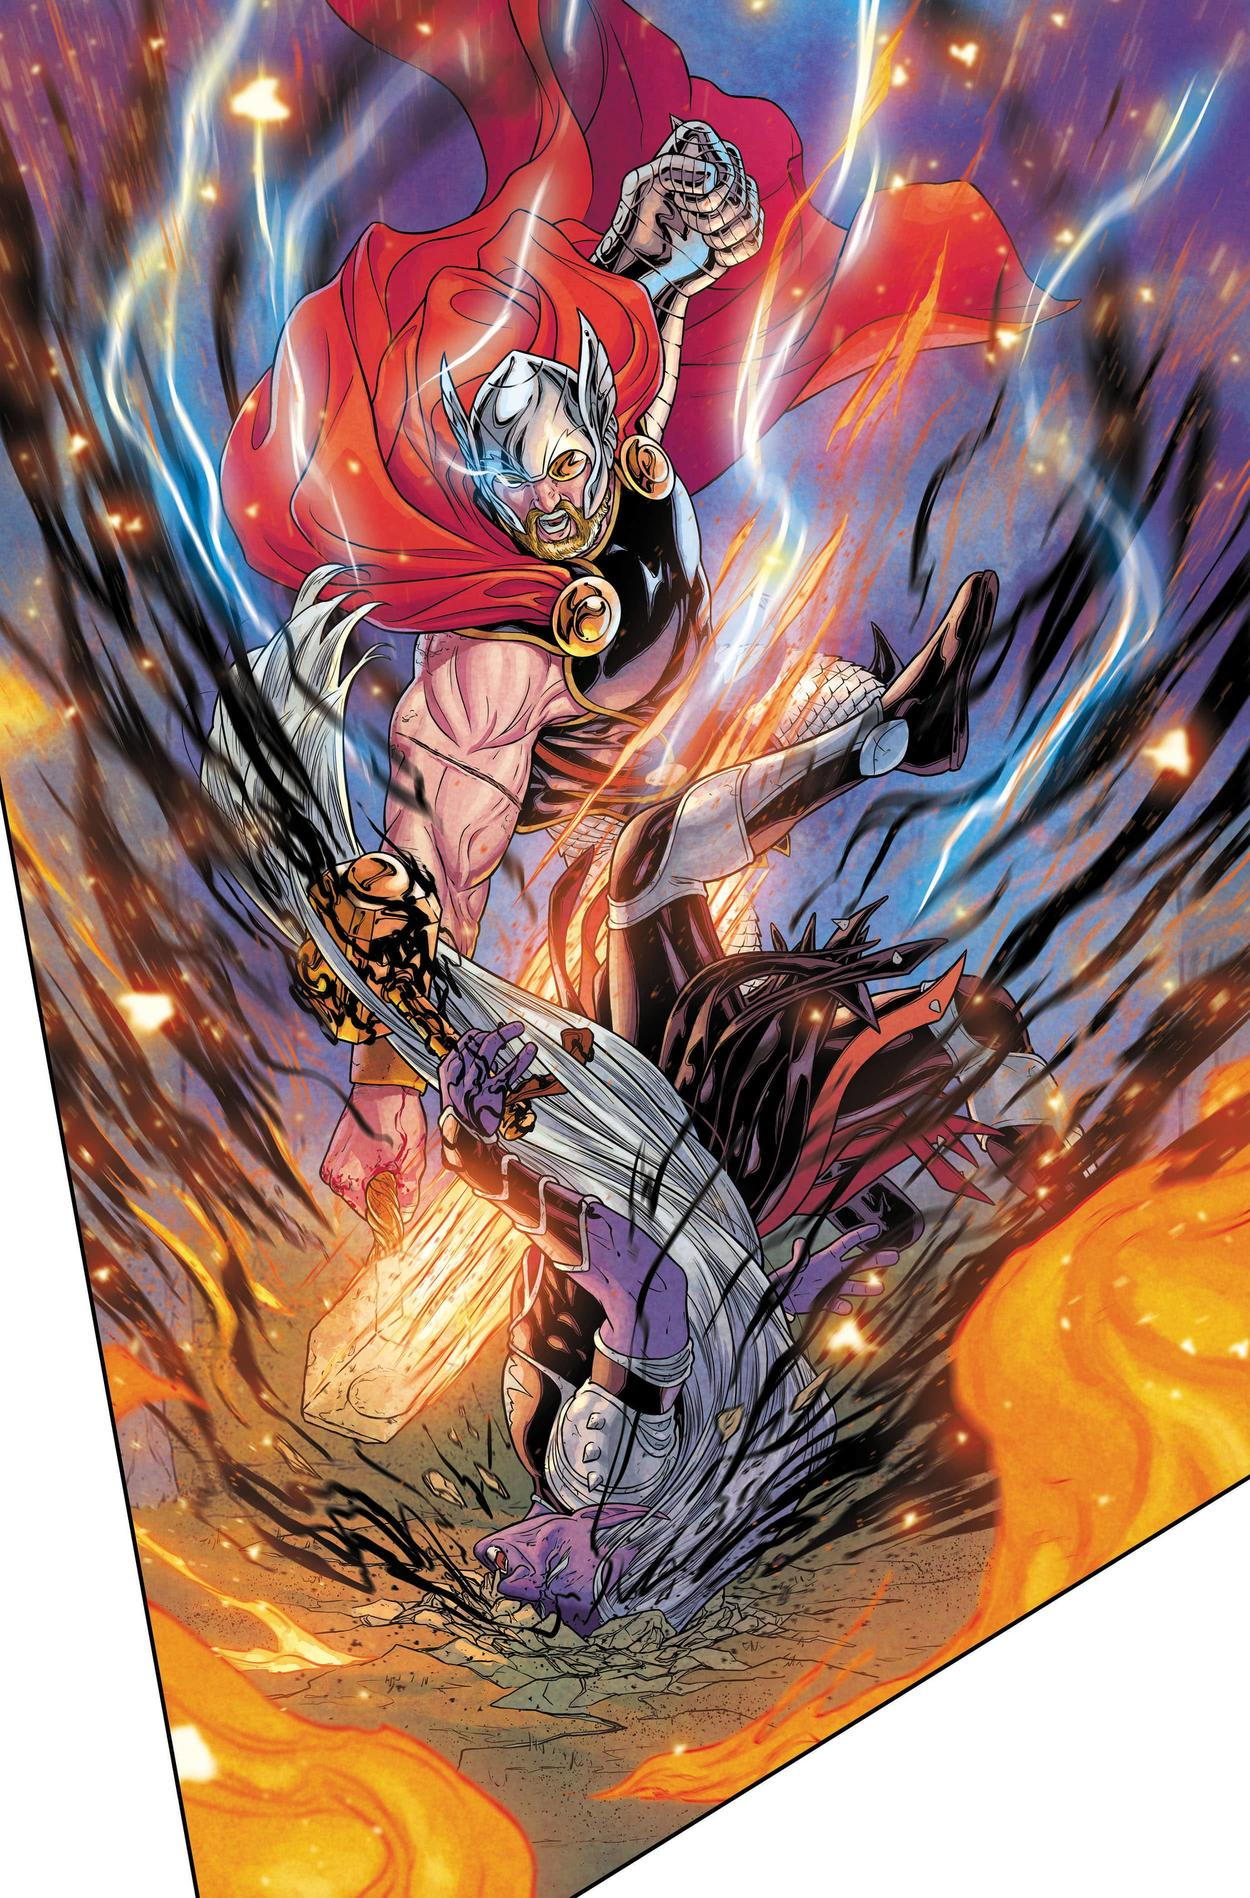 War of the Realms #6 Thor punching Malekith